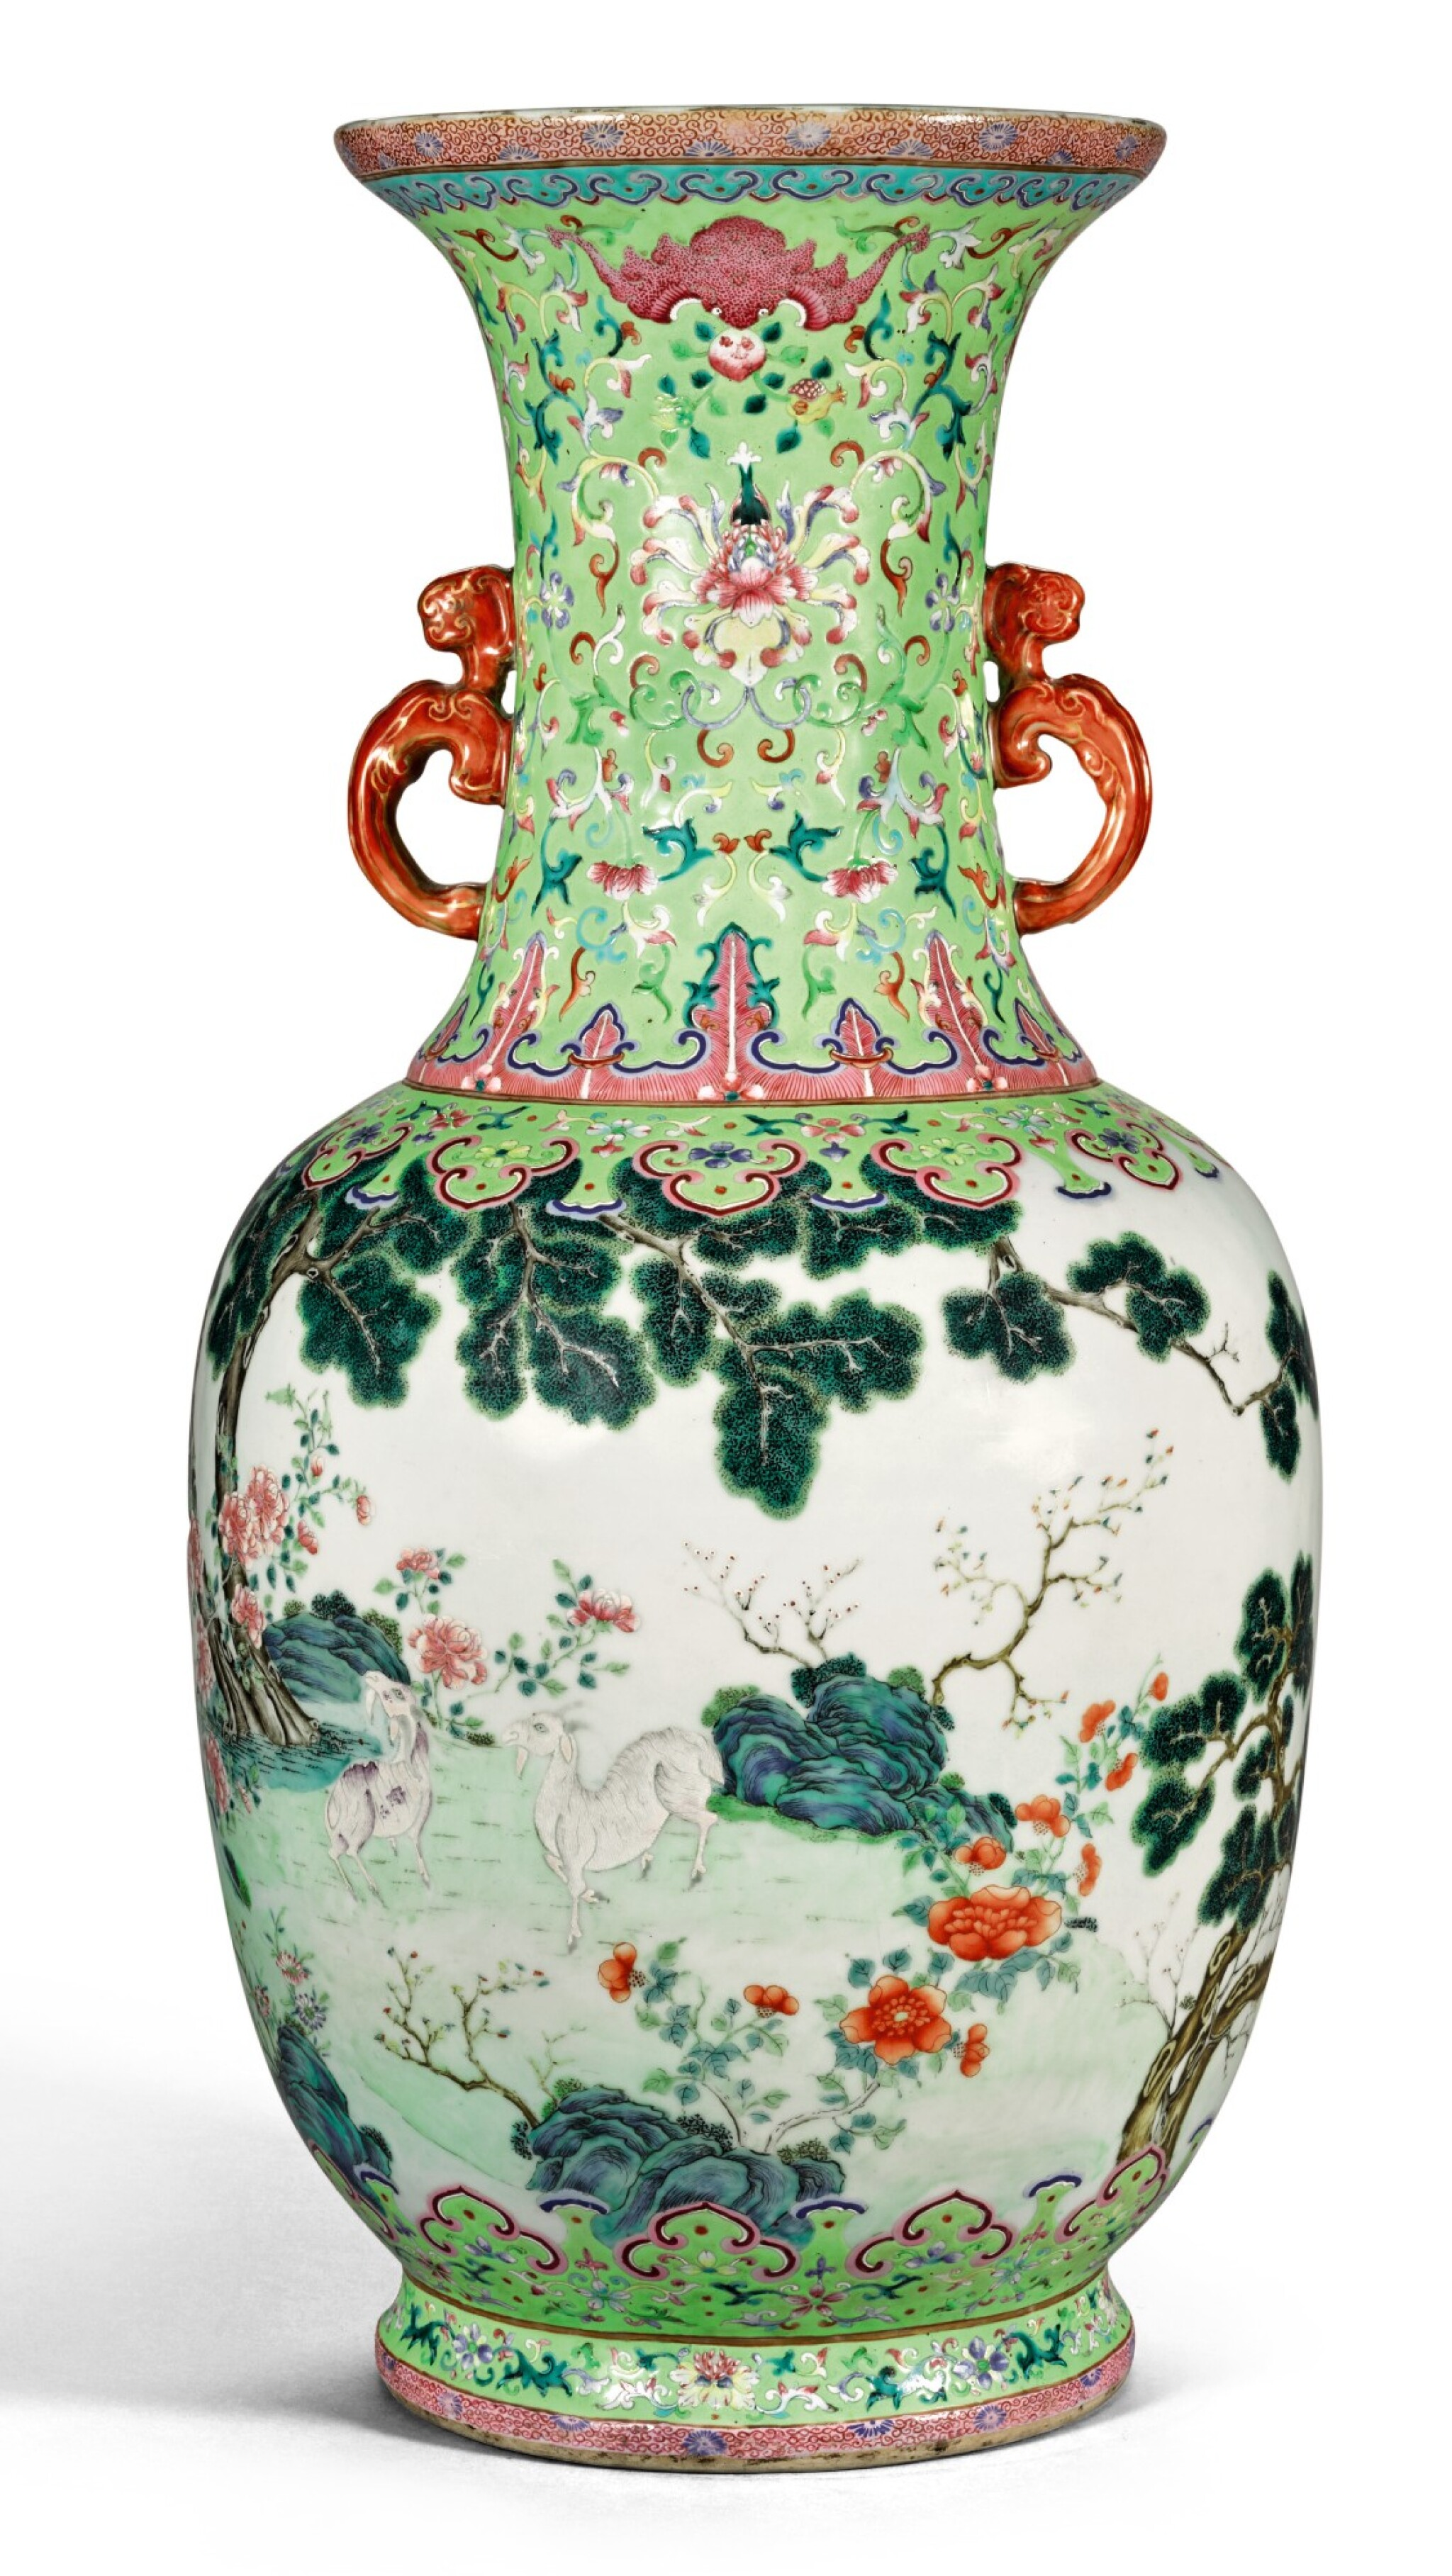 View 1 of Lot 162. A FINE AND RARE LARGE LIME-GREEN GROUND FAMILLE-ROSE 'THREE RAMS' VASE QING DYNASTY, DAOGUANG PERIOD SHENDETANG HALL MARK | 清道光 綠地粉彩通景三羊開泰雙螭耳大瓶 《慎德堂製》款.